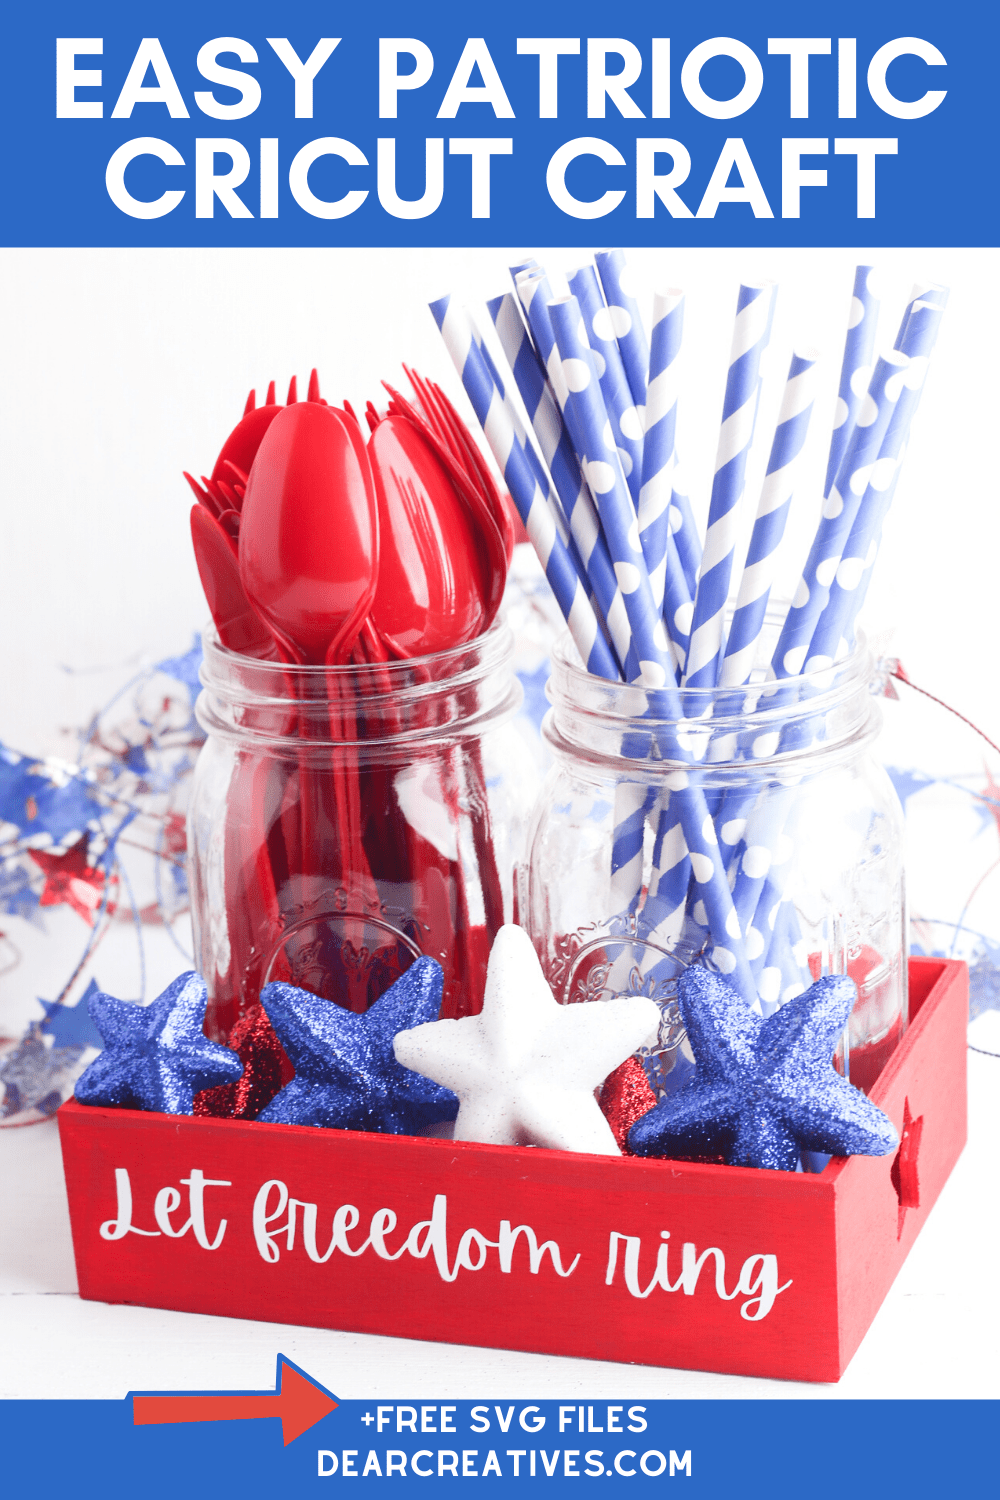 DIY Patriotic Tray Cricut Craft+SVG Files